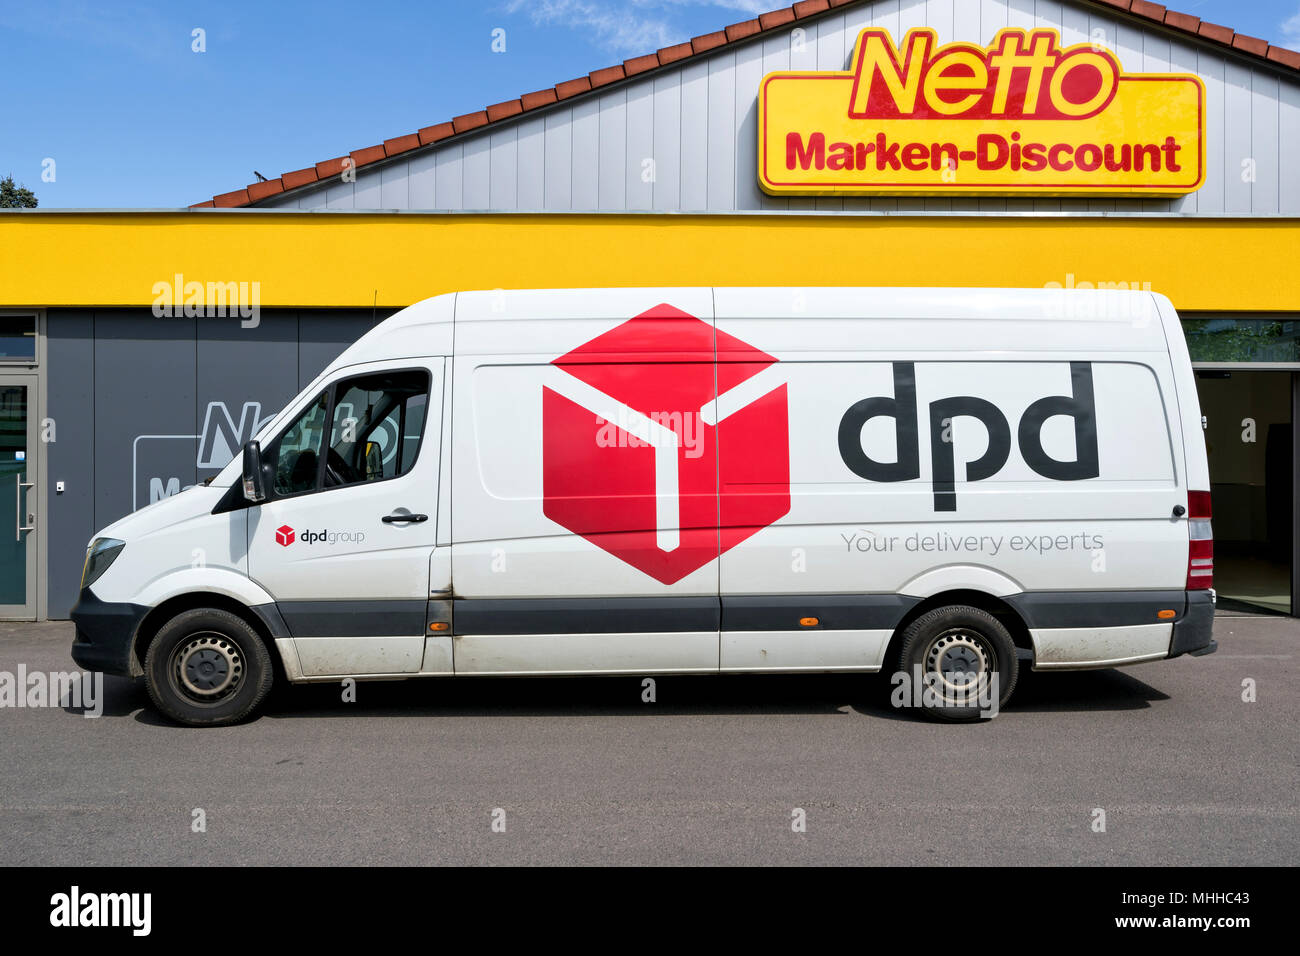 a529e32eb1f6c0 dpd delivery van at Netto discount store. DPDgroup is the international  parcel delivery network of French state owned postal service